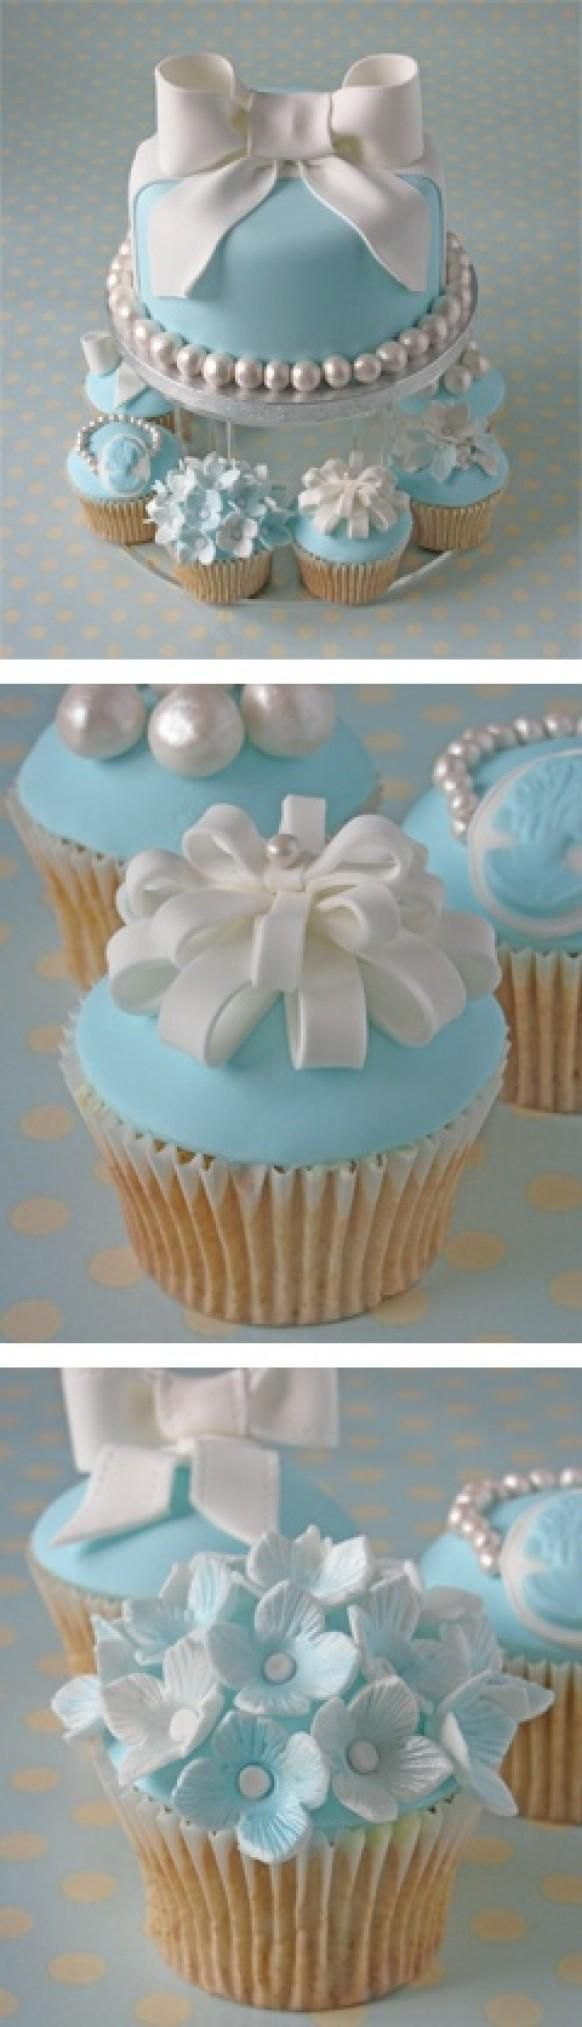 Weddbook is a content discovery engine mostly specialized on wedding concept. You can collect images, videos or articles you discovered organize them, add your own ideas to your collections and share with other people - Tiffany Inspired sweets, blue cake #blue